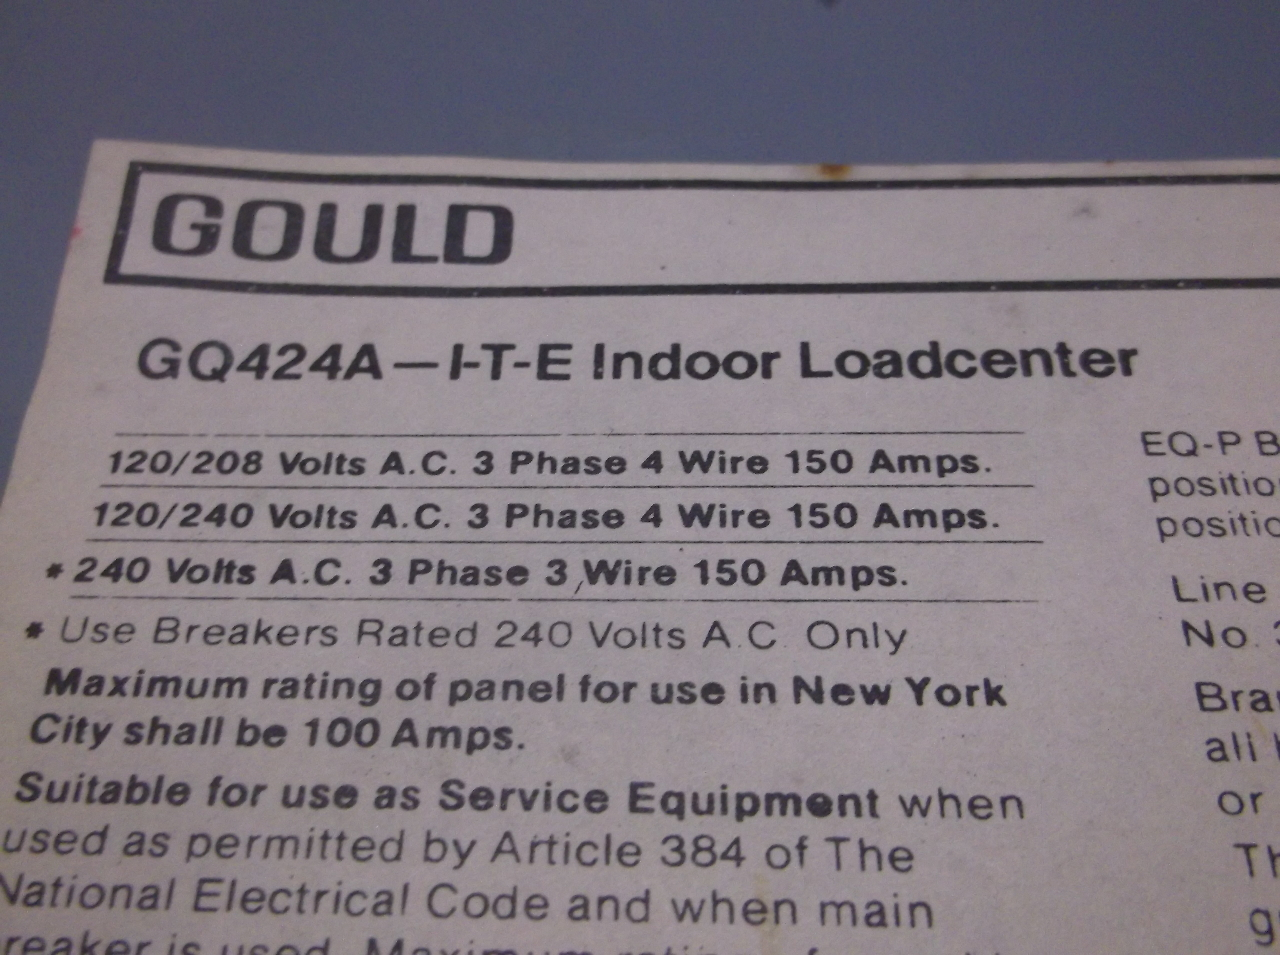 Gould GQ424A Indoor Load Center 120240 Volt 150 Amp